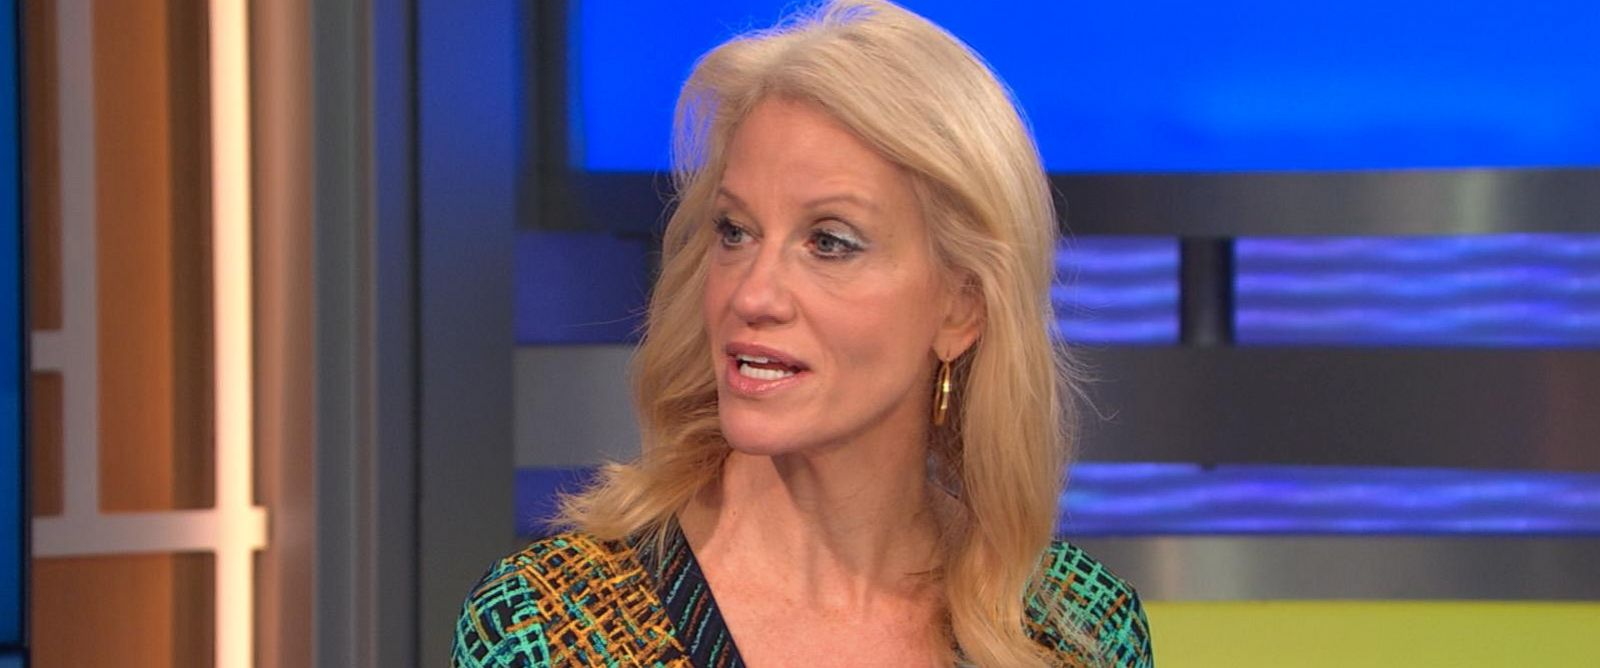 donald trump campaign manager kellyanne conway berates wishy photo kellyanne conway appears here on good morning america oct 12